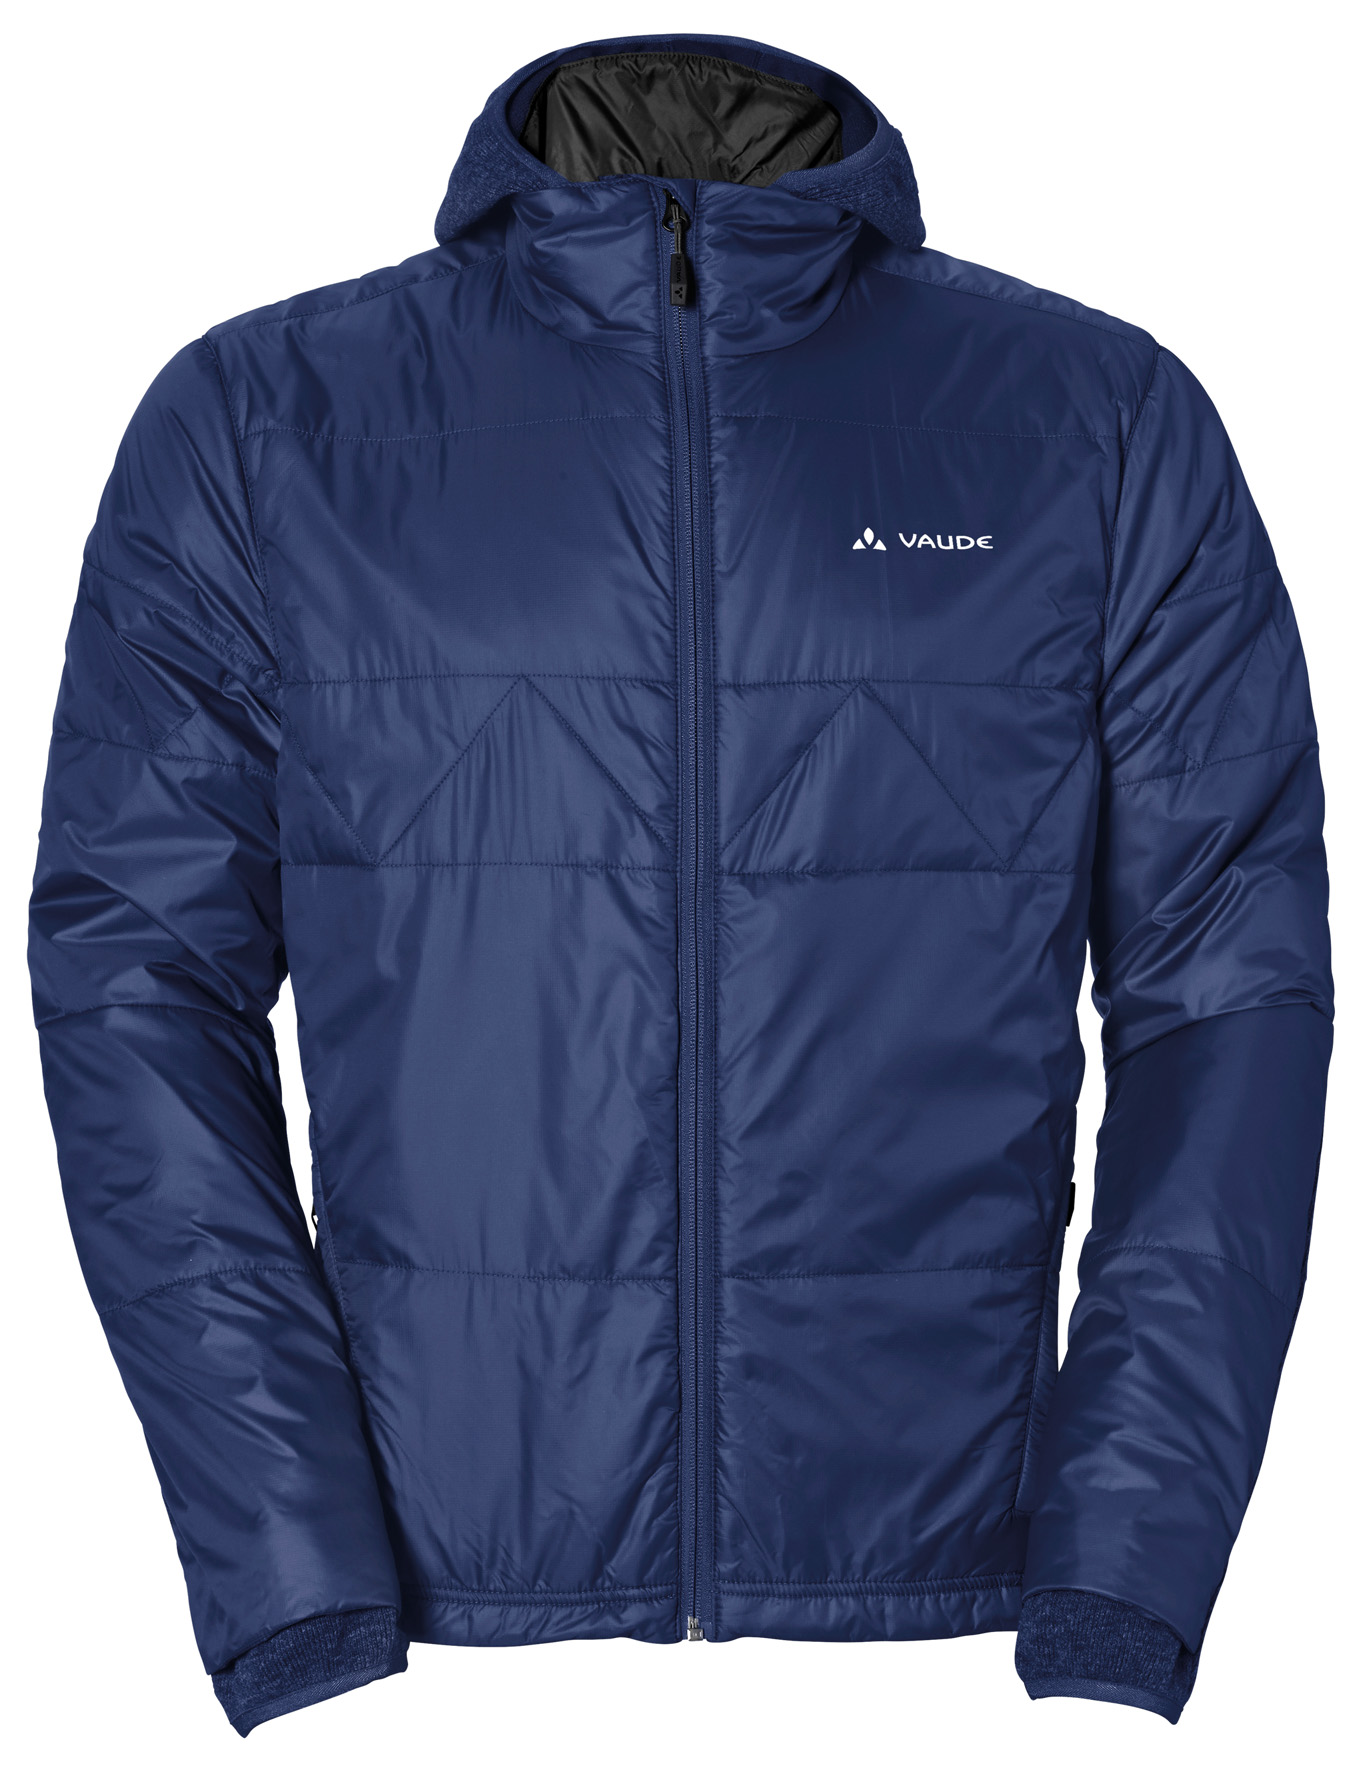 VAUDE Men´s Tirano Padded Jacket sailor blue Größe M - schneider-sports